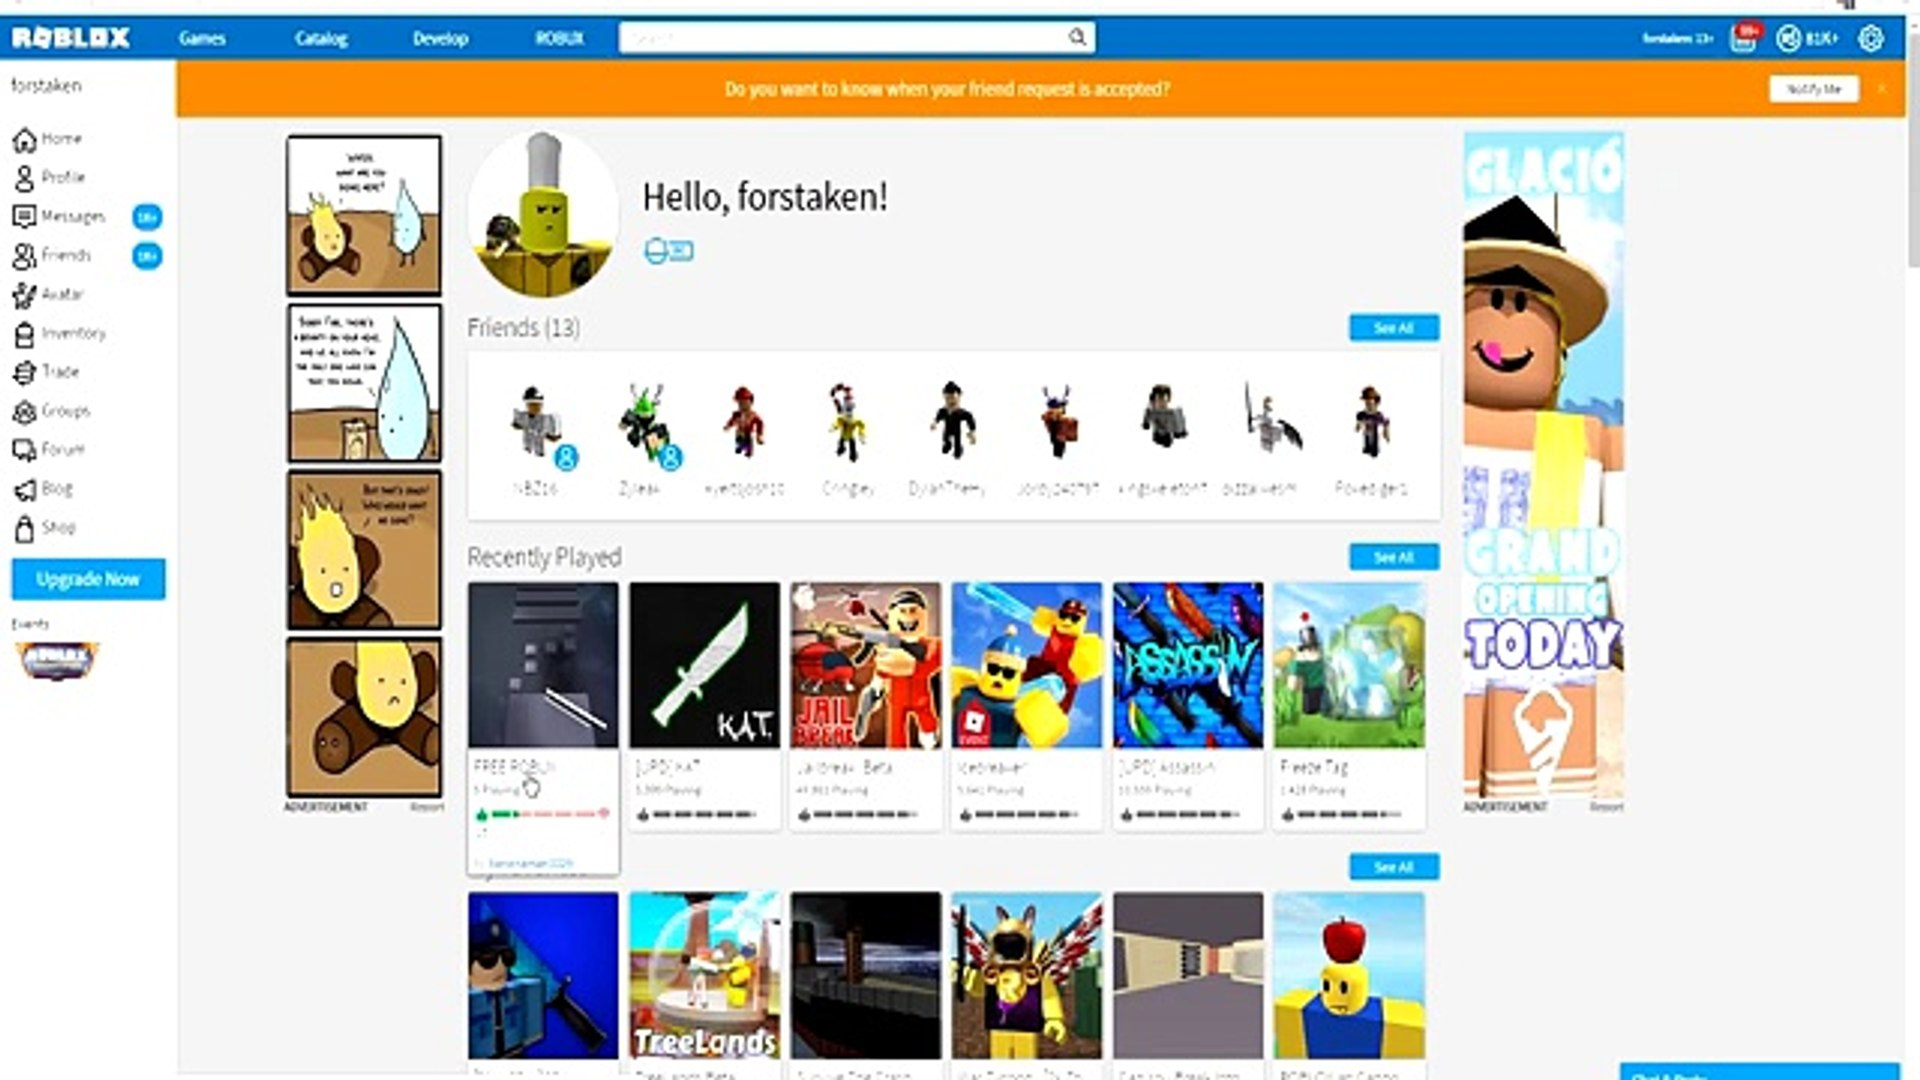 This Roblox Game Gives You Free Robux - zephplayz roblox robux app